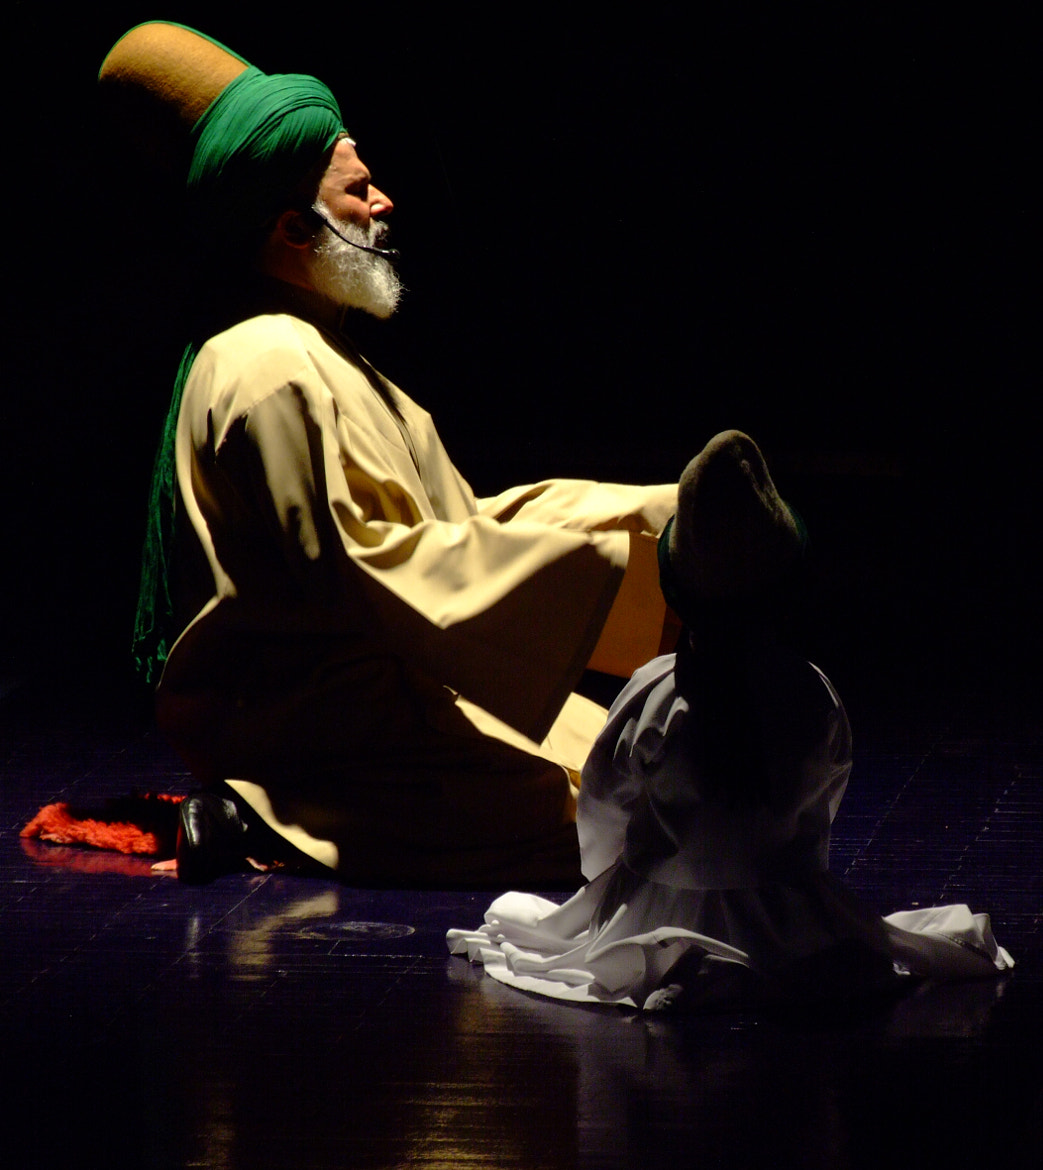 Photograph sufi by erol sesi on 500px